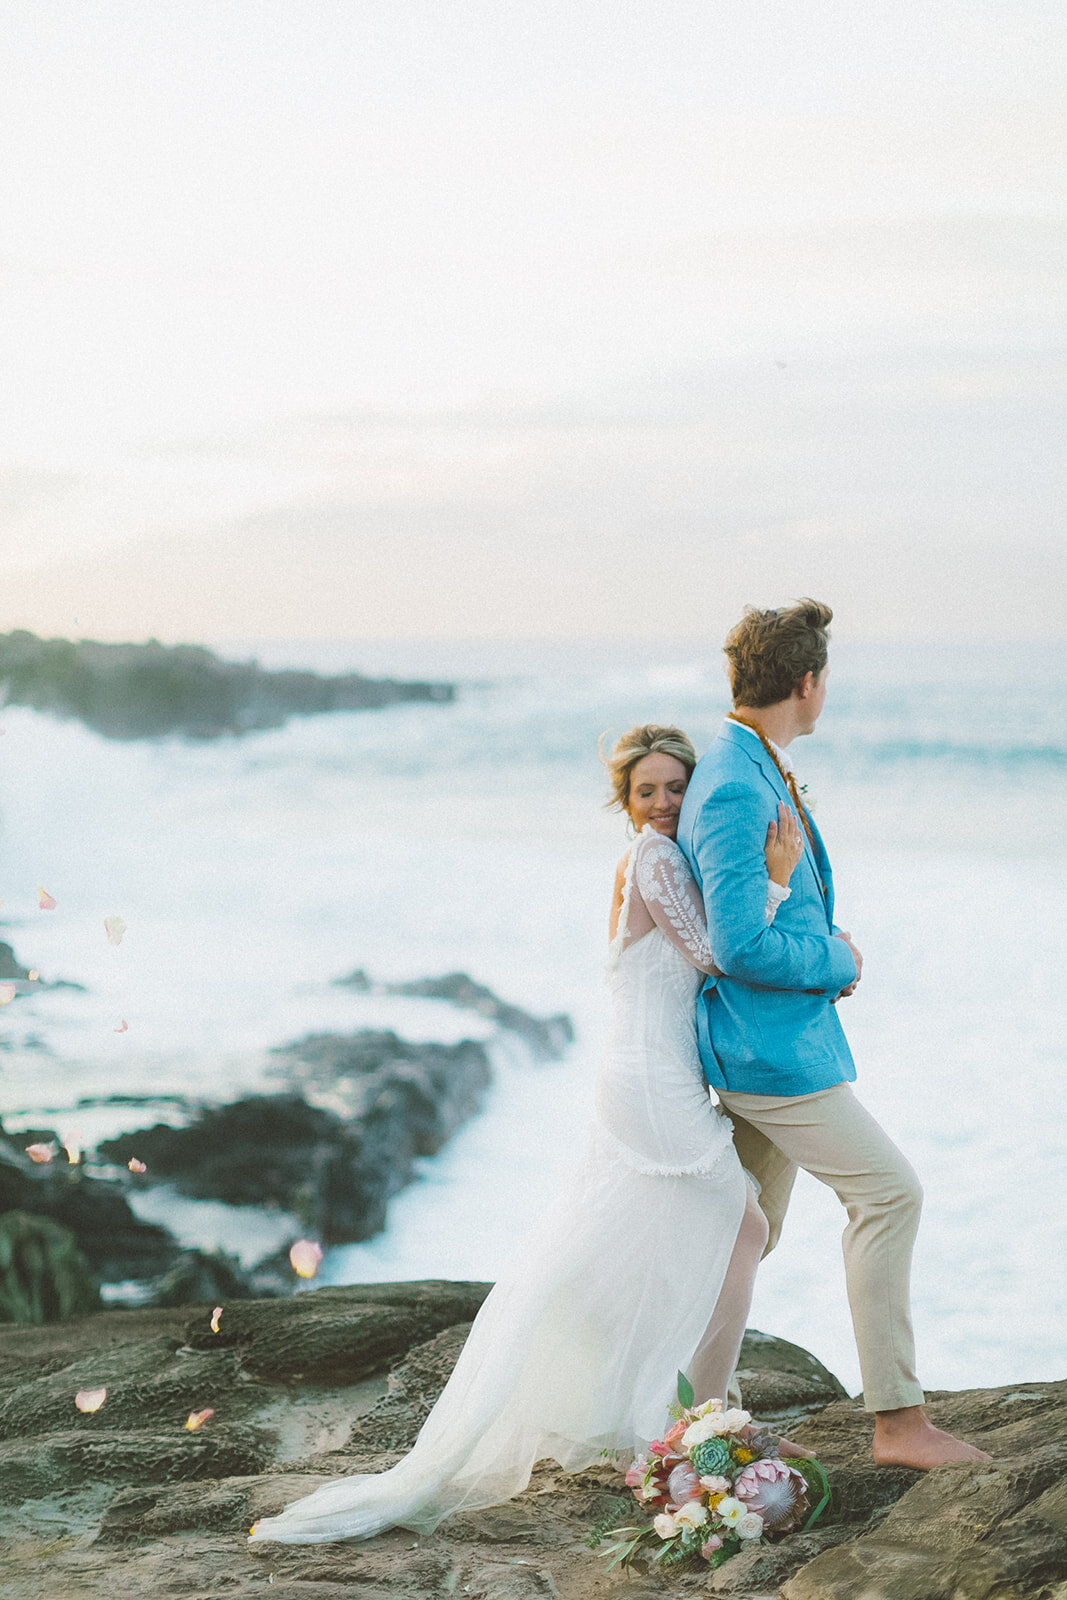 Maui wedding photographer20181126_0060.jpg